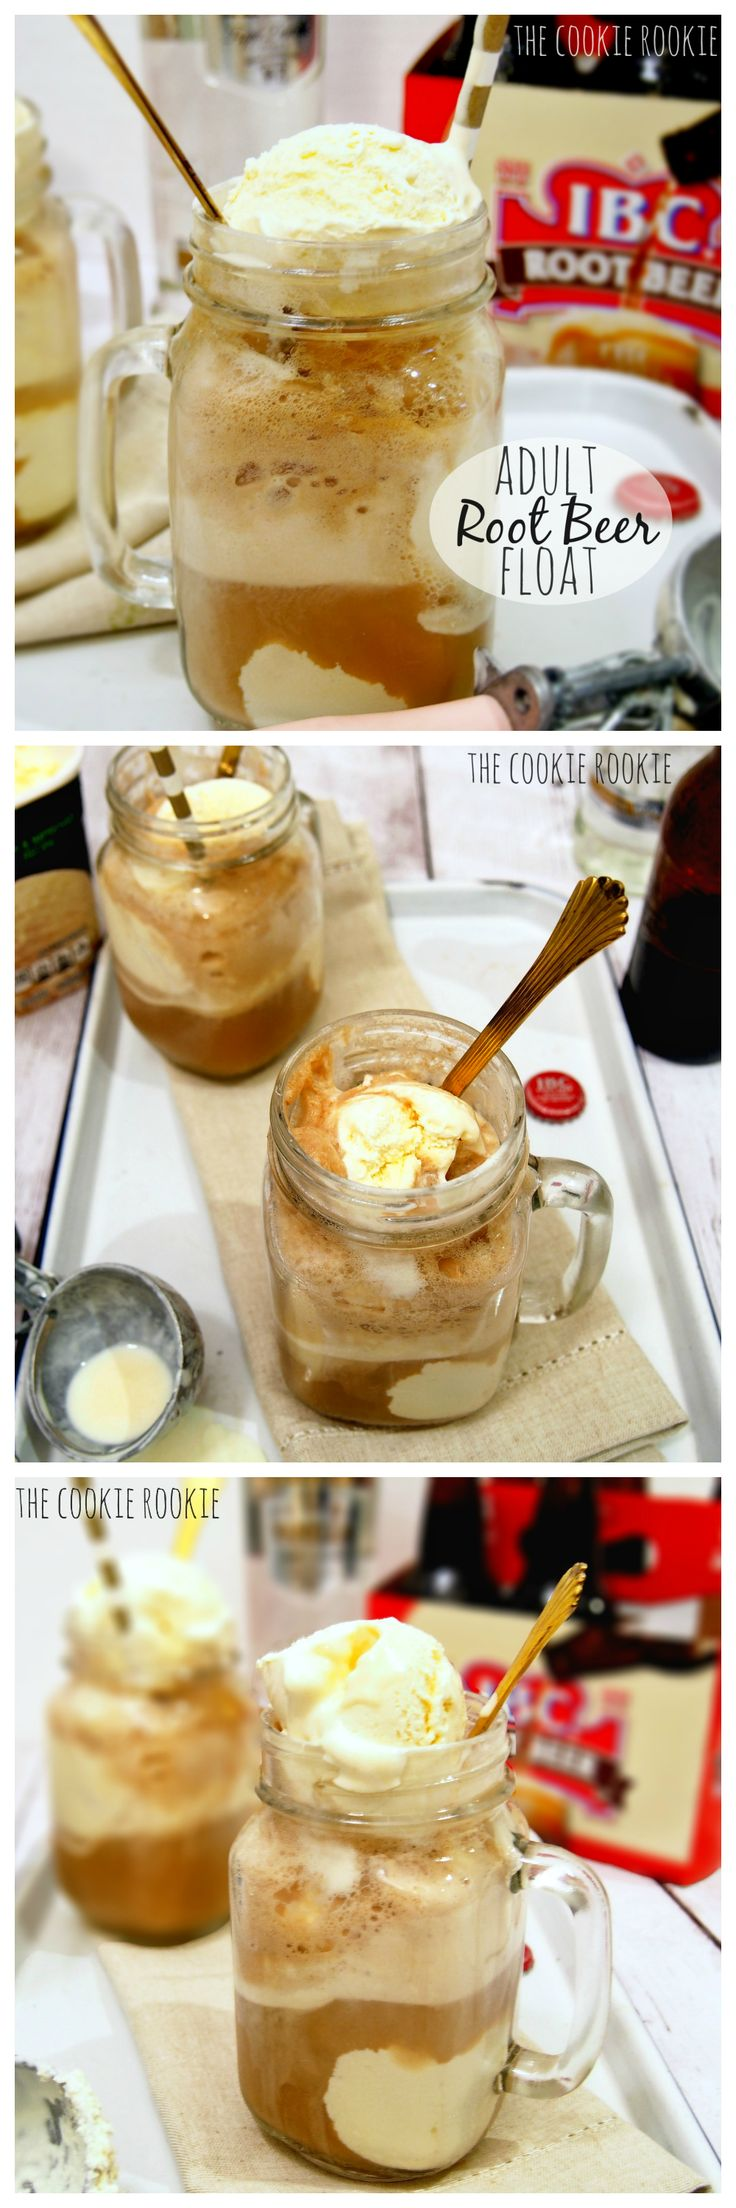 ADULT ROOT BEER FLOATS! what could be better for summer? ice cream, vanilla vodka, and root beer. yummm. - The Cookie Rookie